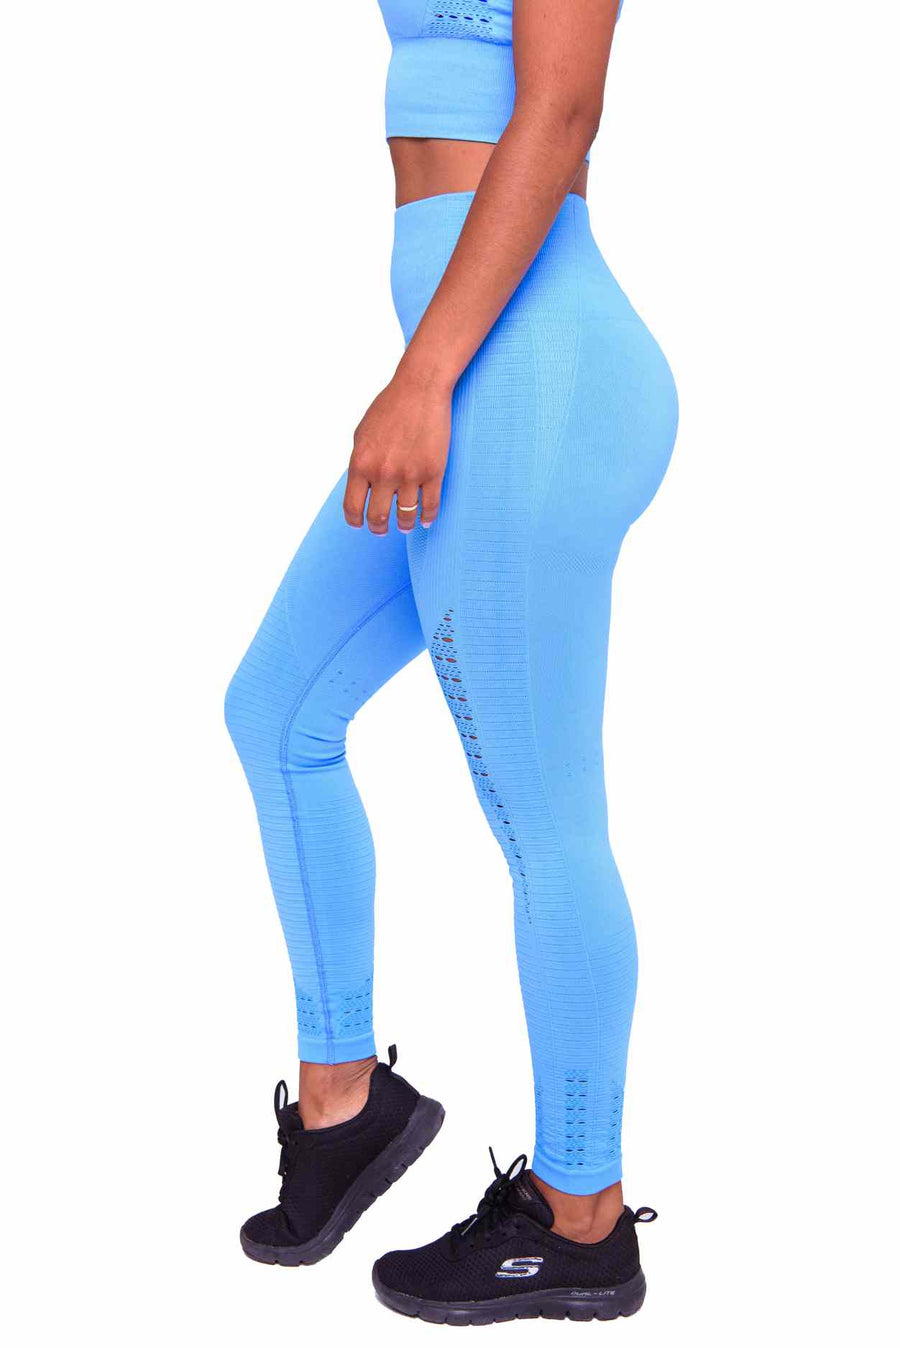 Activewear - Performance Seamless Leggings - Ocean Blue - THIQ